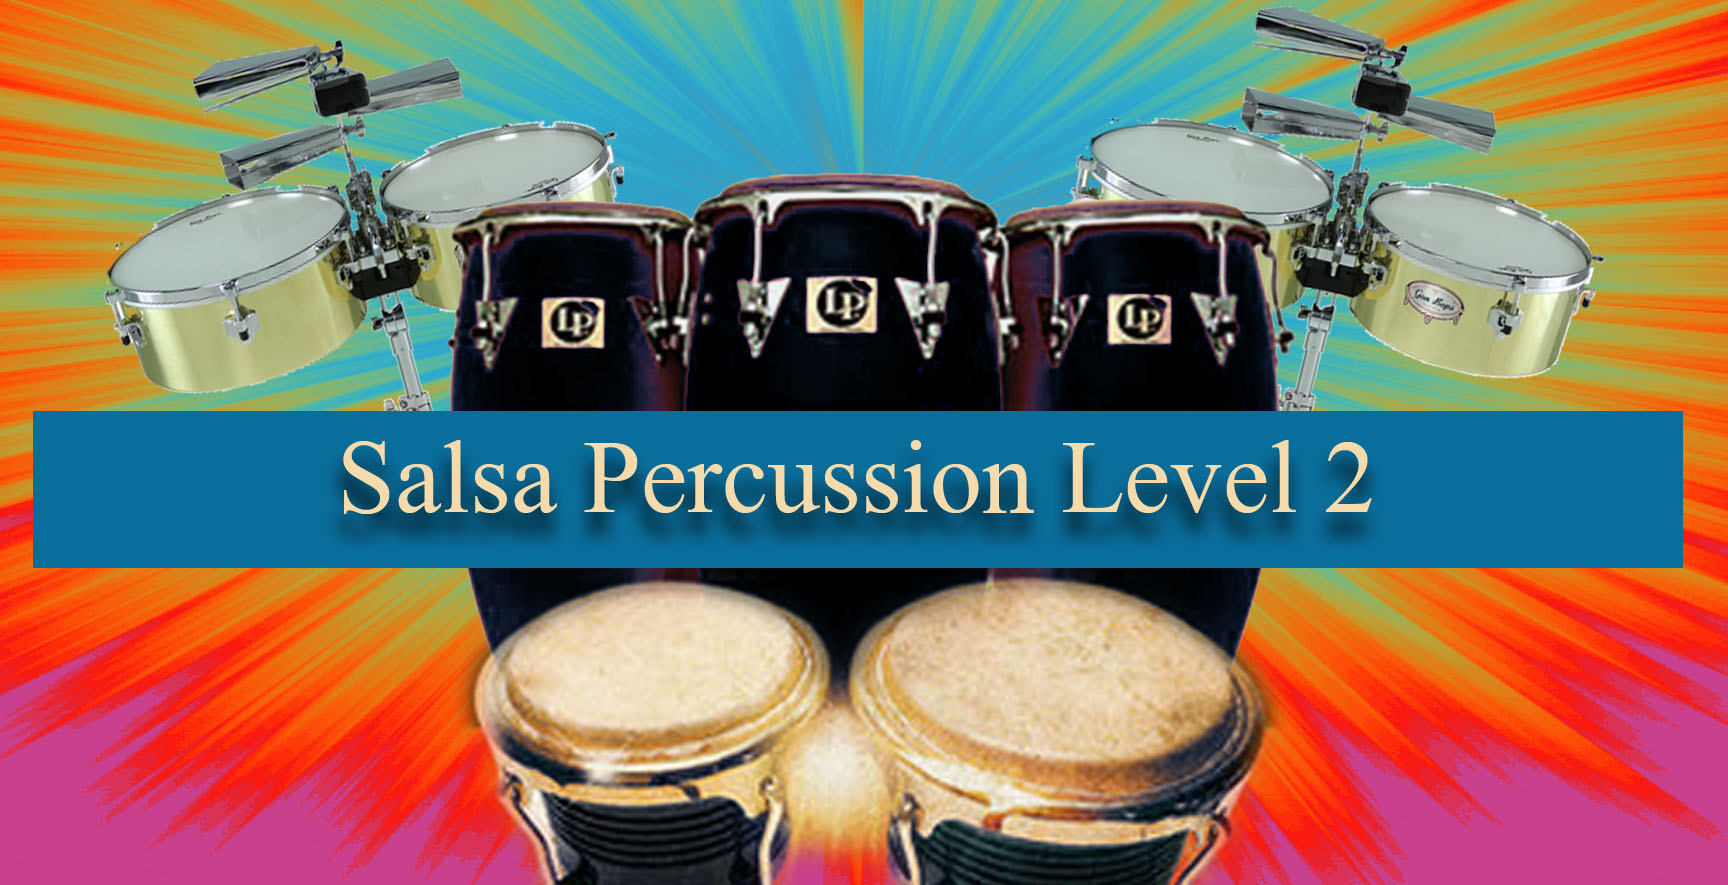 Salsa Percussion Level 2